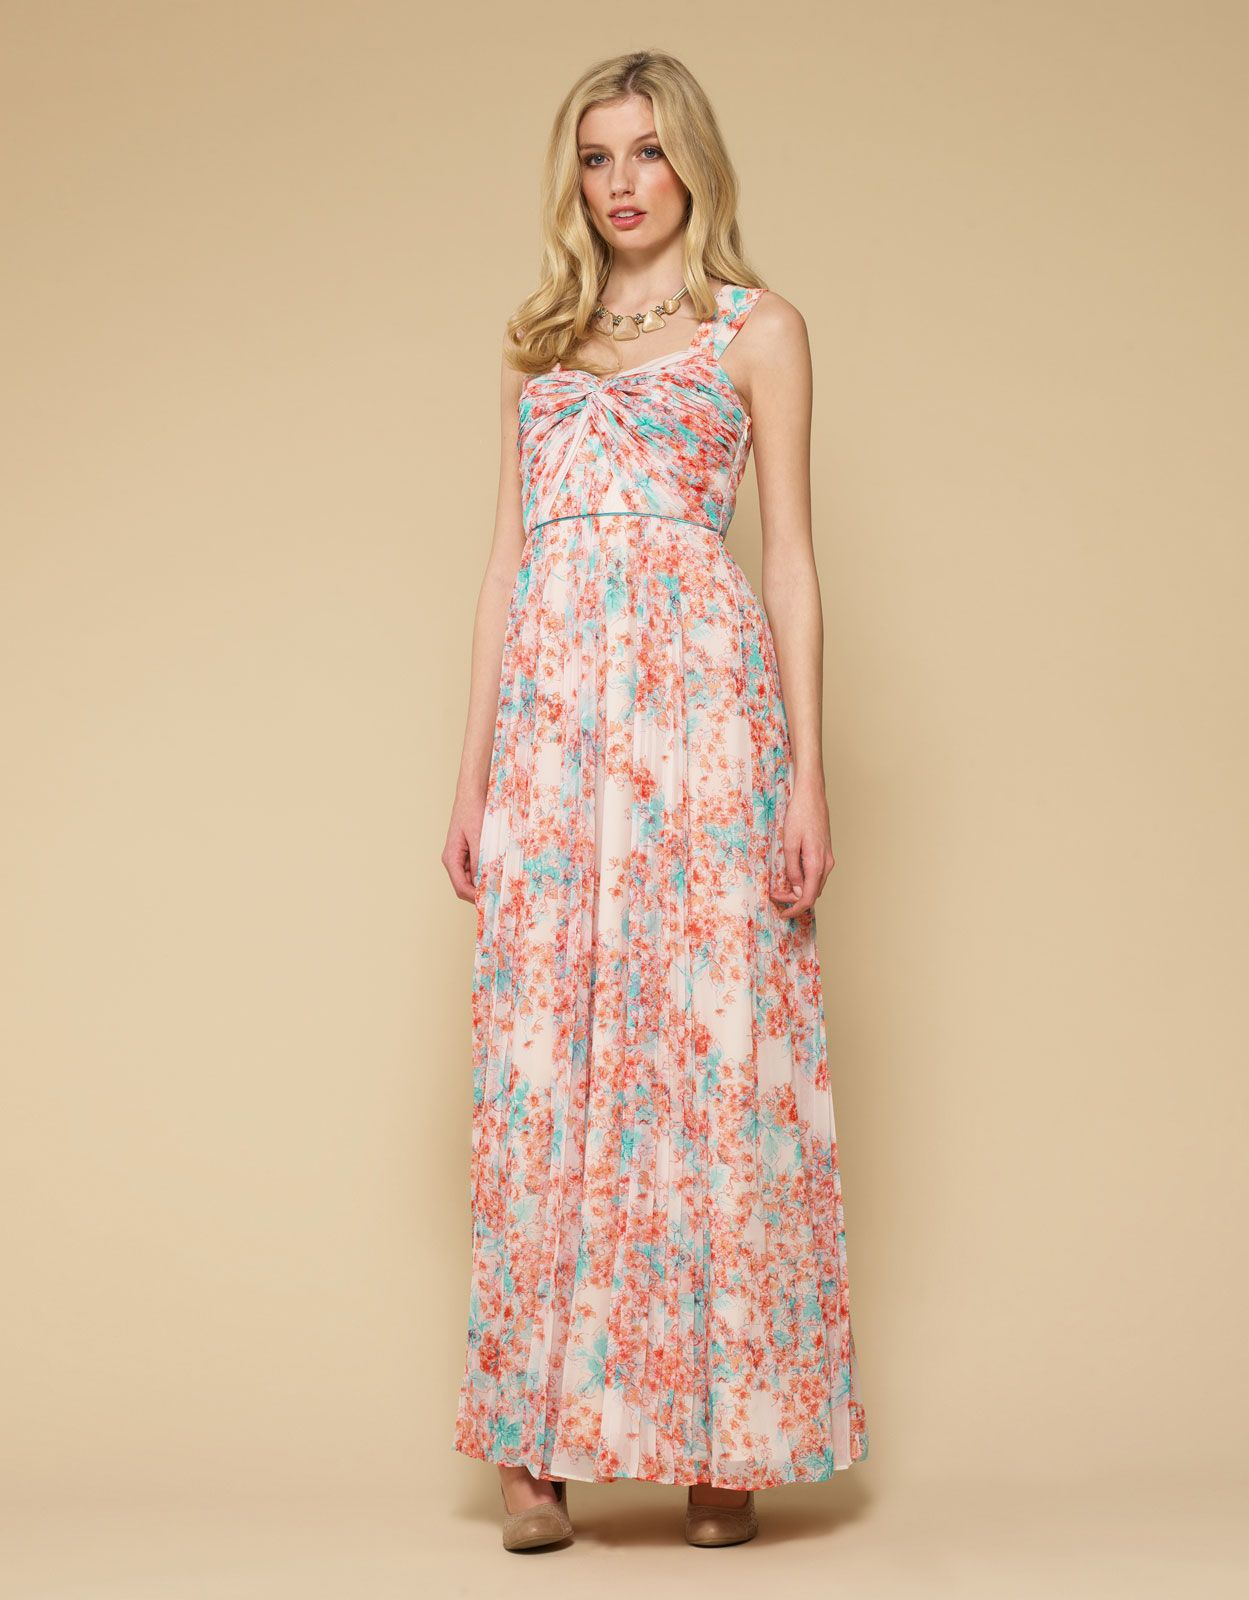 Maxi dresses in monsoon